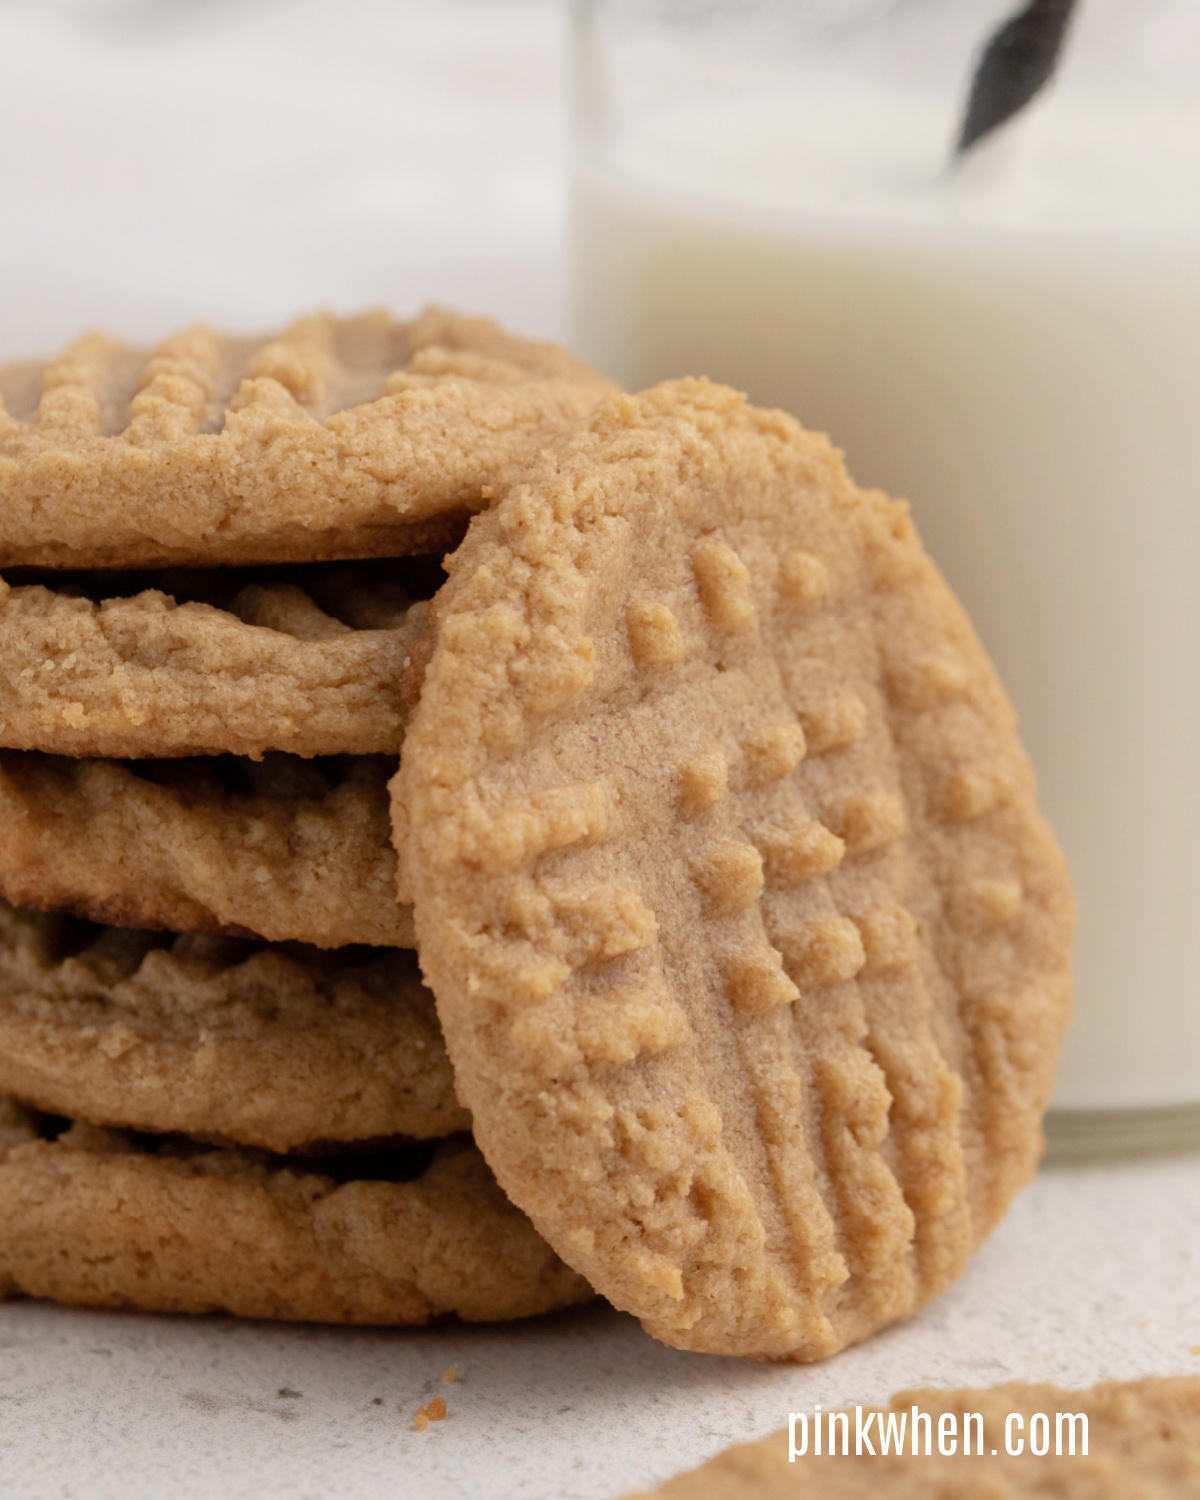 Close up photo of peanut butter cookies stacked next to a glass of milk.